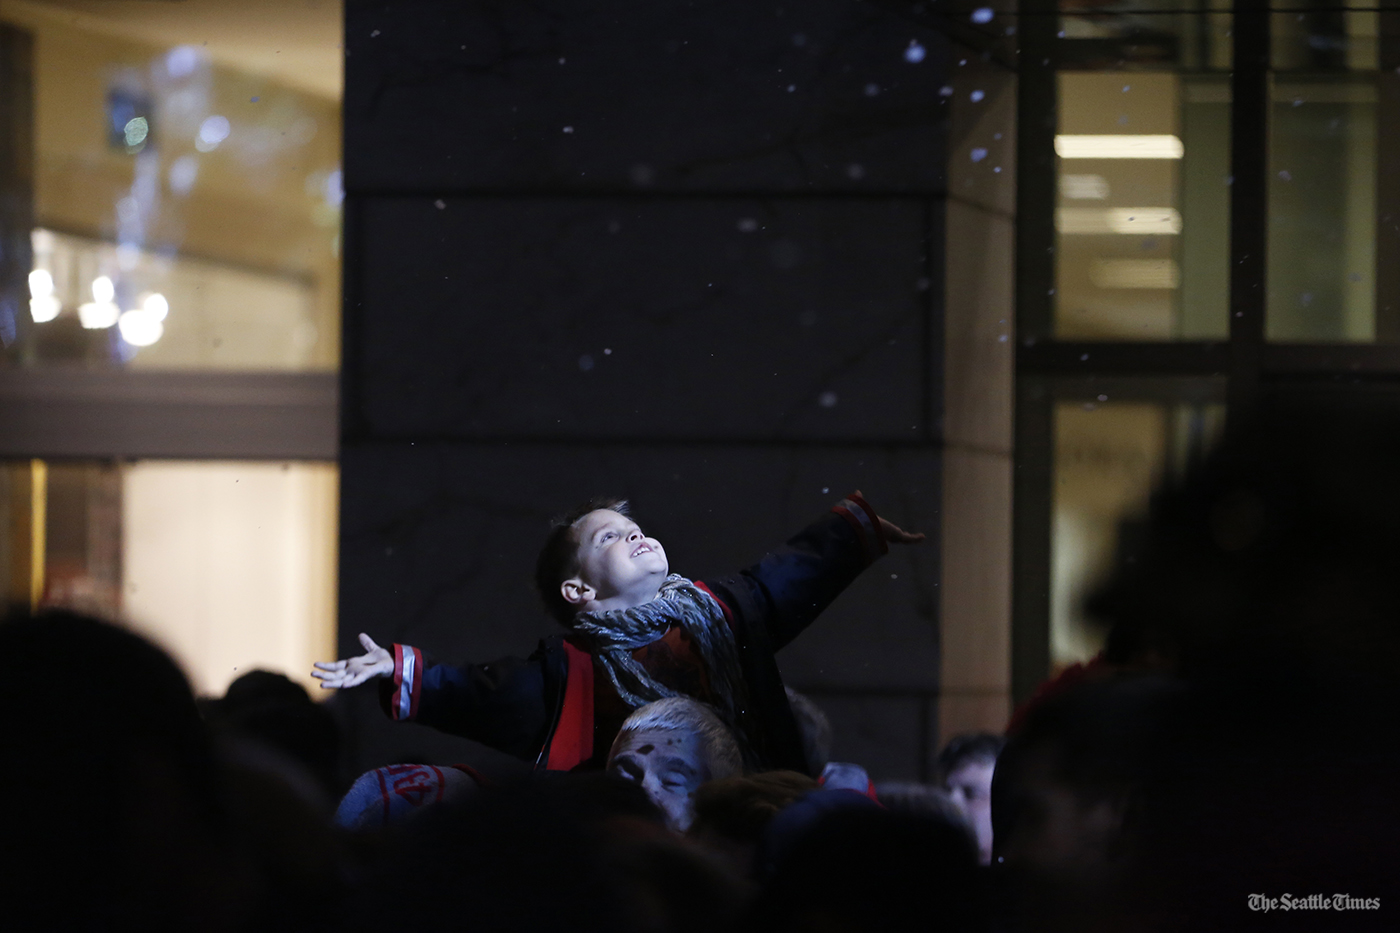 A young boy looks to catch fake snowflakesat Westlake Park prior to watching the annual lighting of the Westlake Center Tree as well as the famous 161-foot high, 3,600-bulb Holiday Star above Macy's on Friday, November 25, 2016.